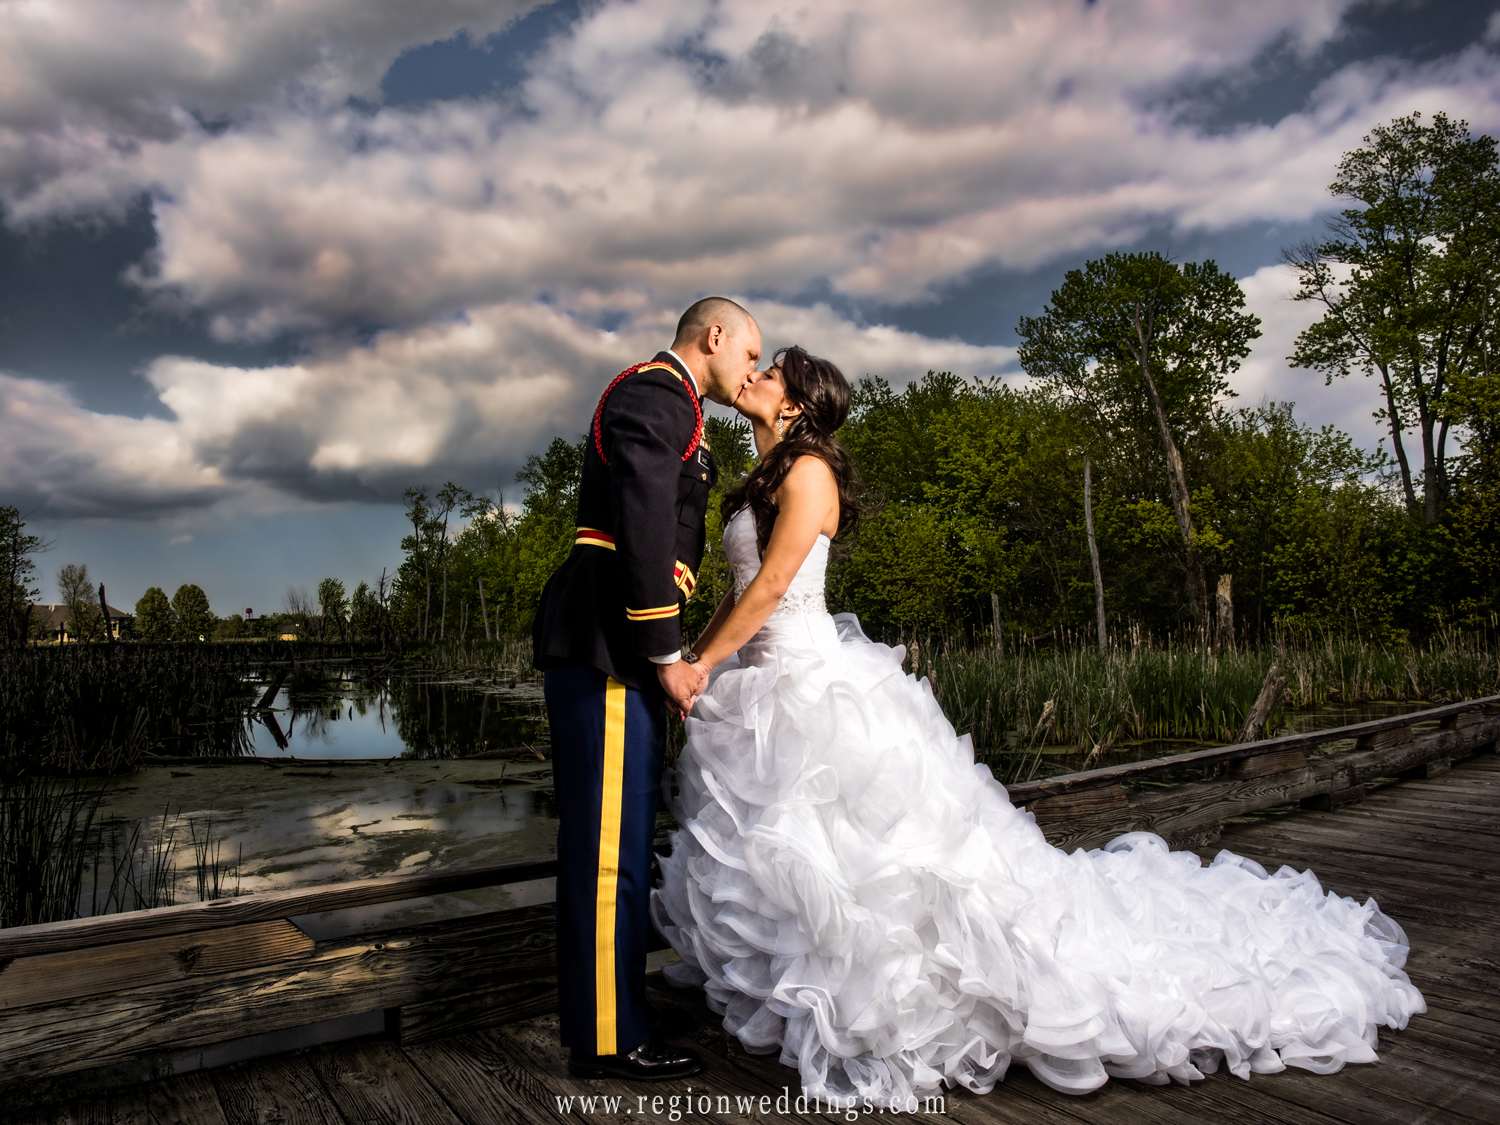 The bride and groom share a kiss on the scenic bridge at White Hawk Country Club in Crown Point, Indiana.